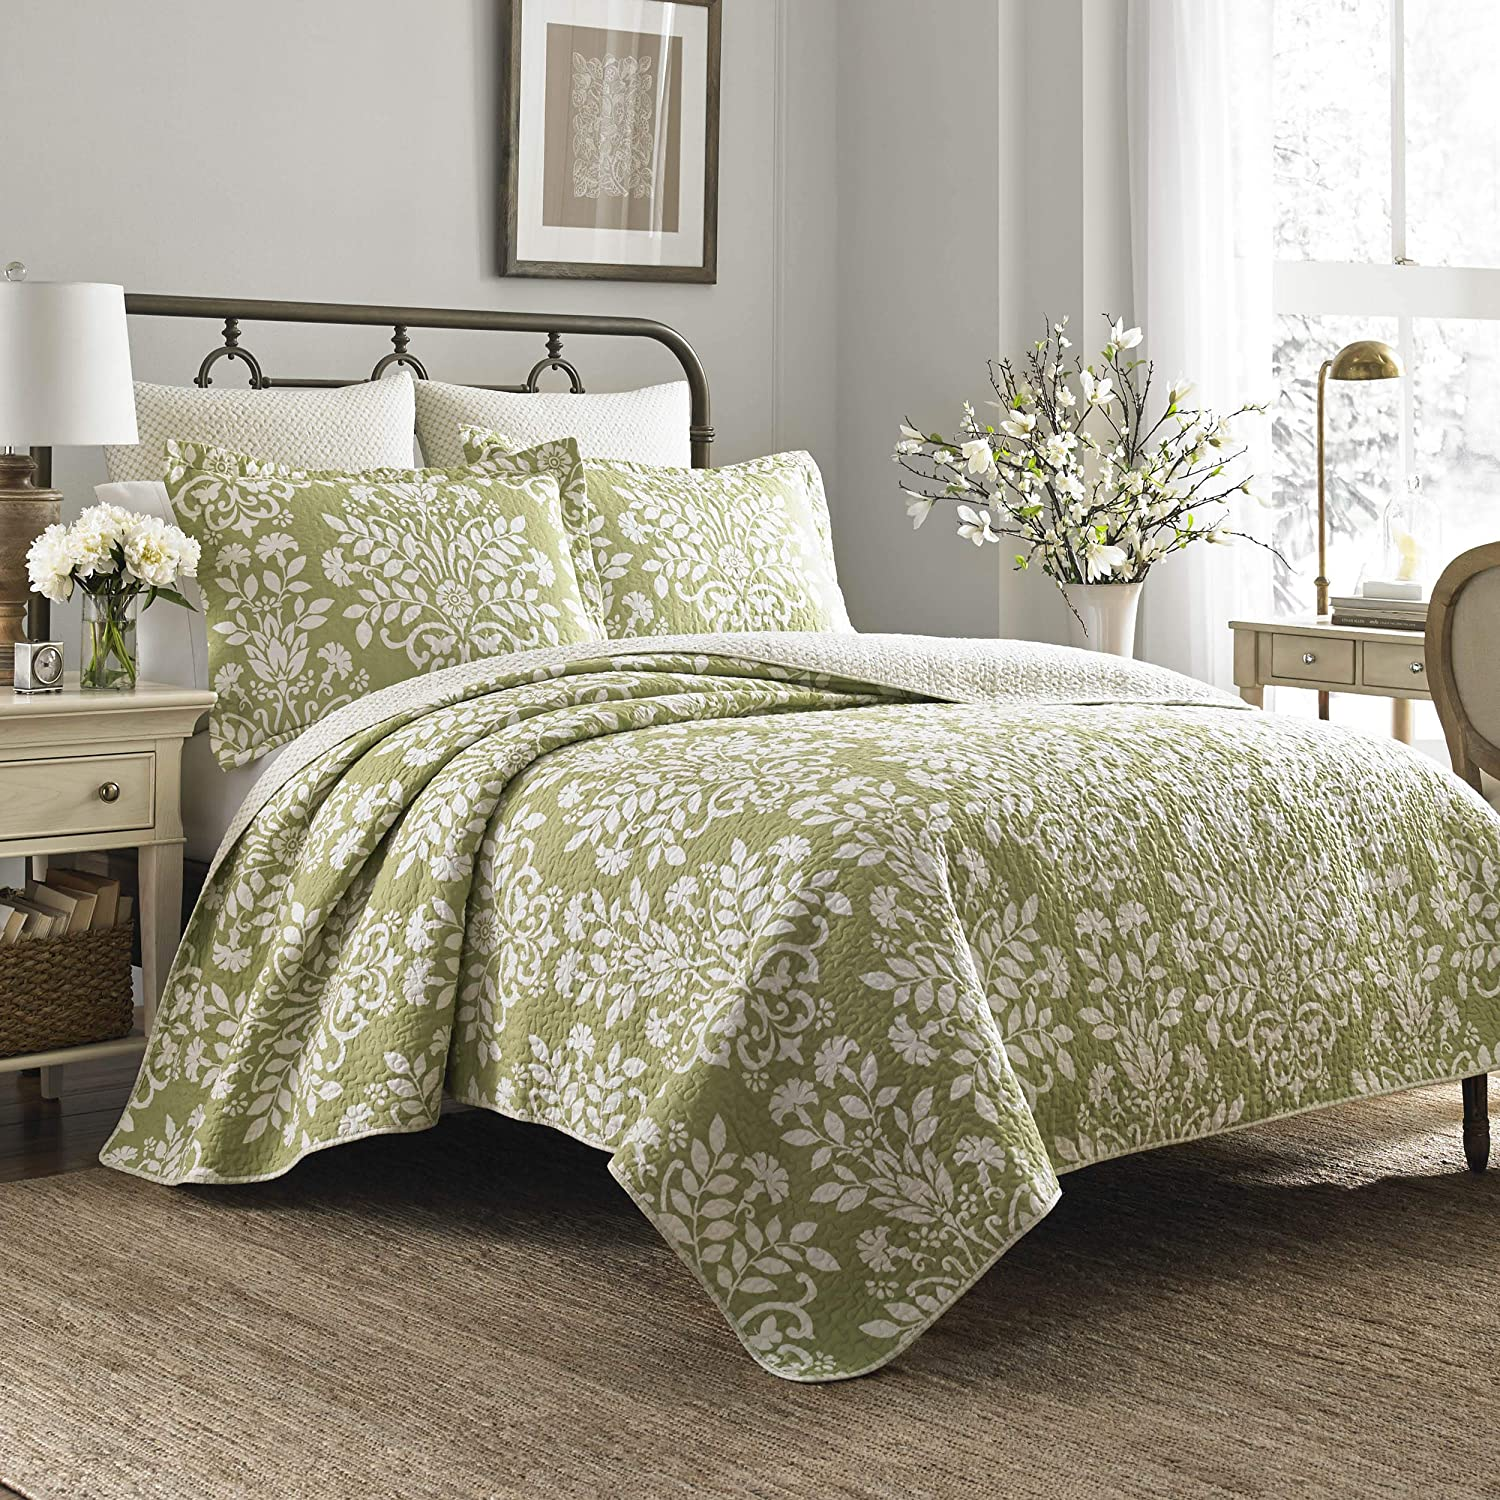 Laura Ashley Rowland Collection Quilt Set-100% Cotton, Reversible, All Season Bedding with Matching Sham(s), Pre-Washed for Added Comfort, King, Sage